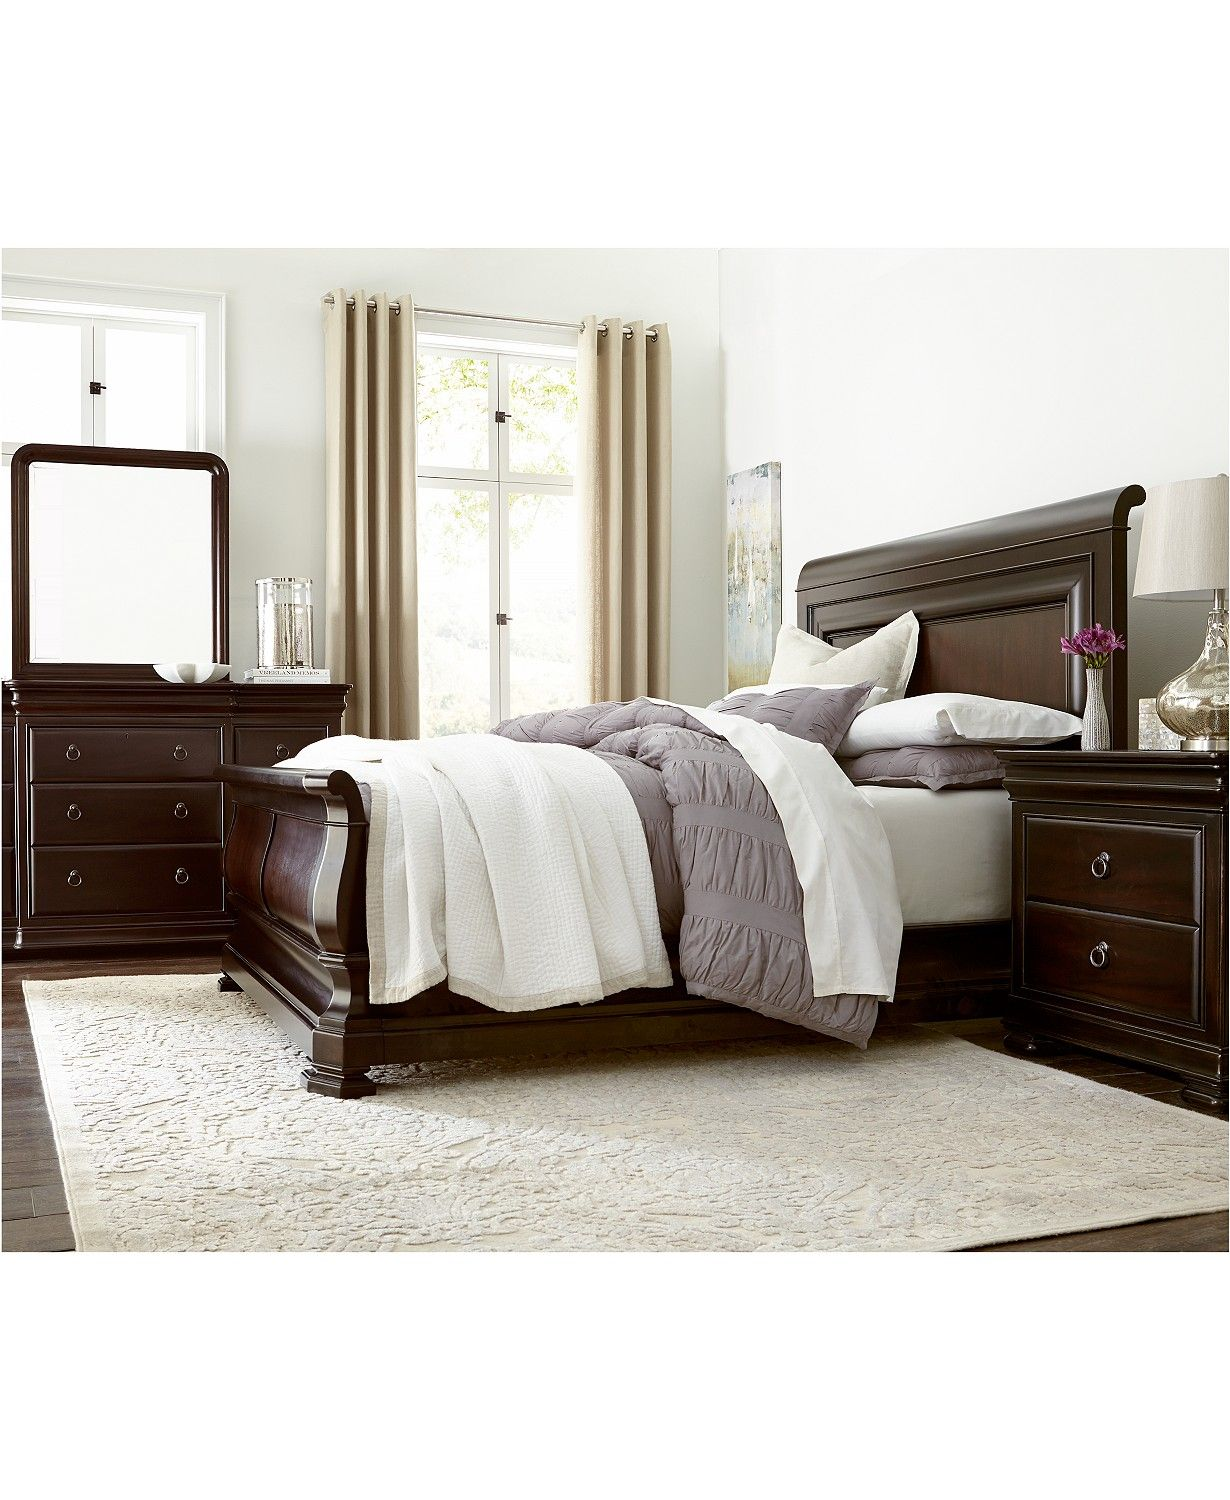 Morena Bedroom Furniture Collection, Created for Macy's ...